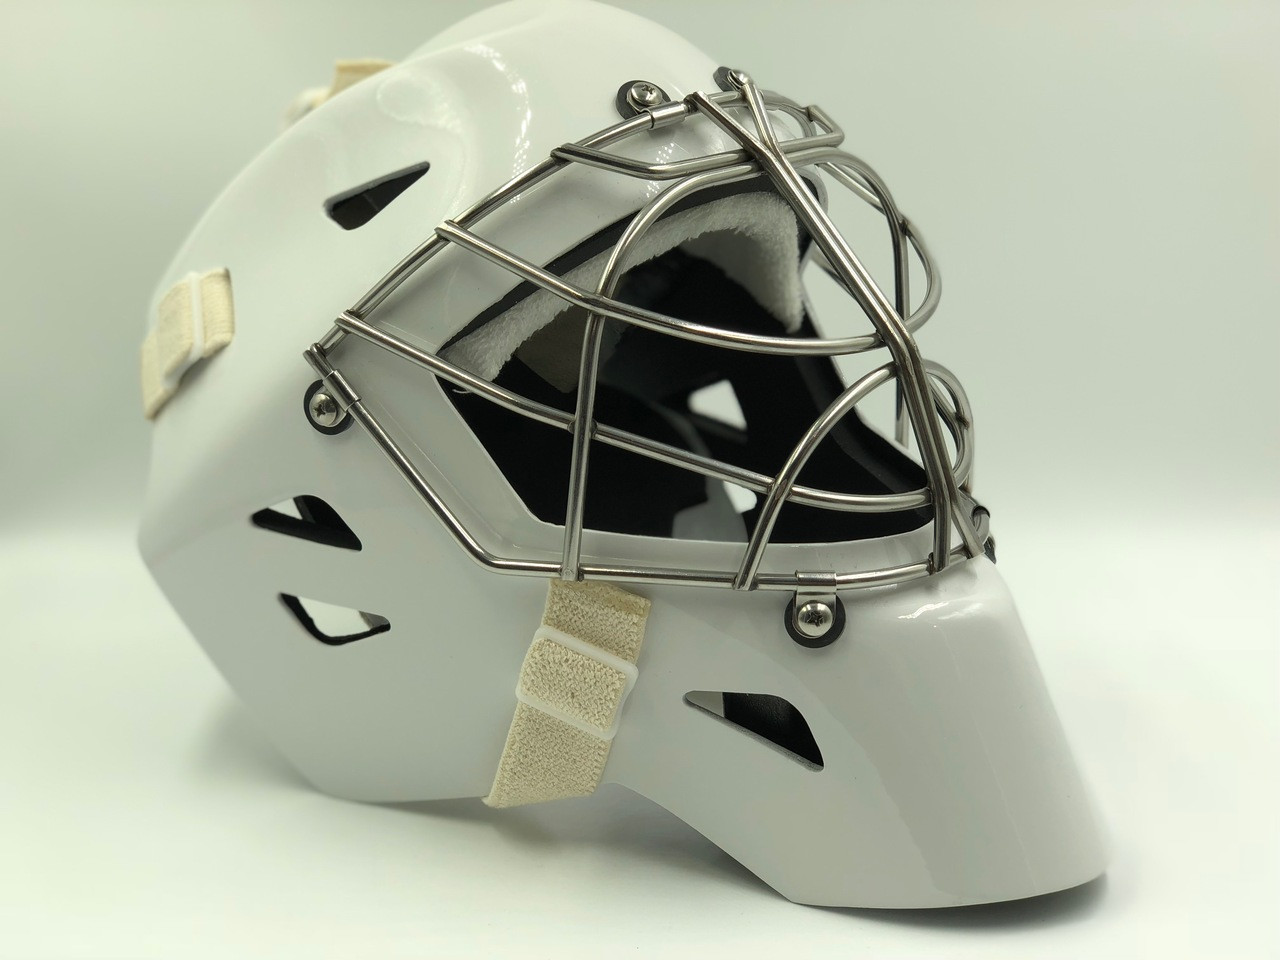 Otny x1 eco pro goalie mask goalieparts otny x1 eco pro goalie mask maxwellsz